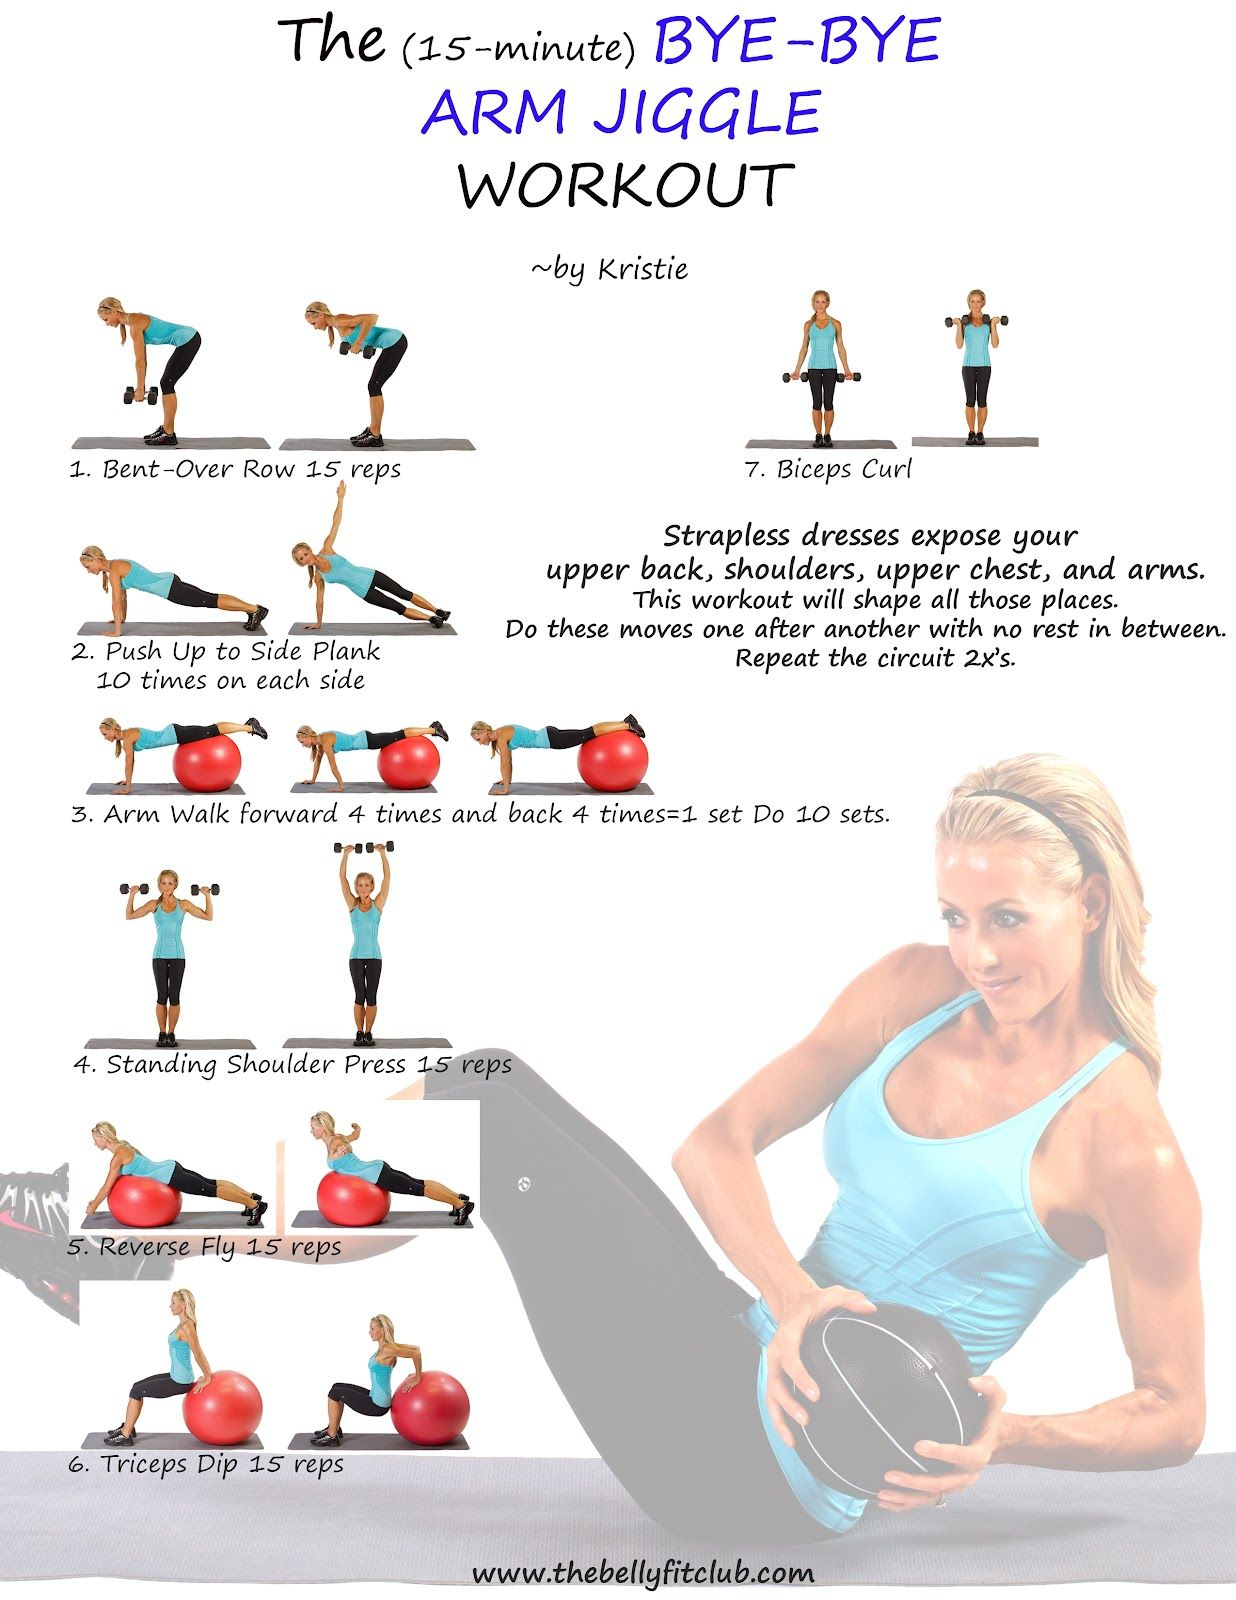 Watch The (15 Minute) Bye-Bye Arm Jiggle Workout video